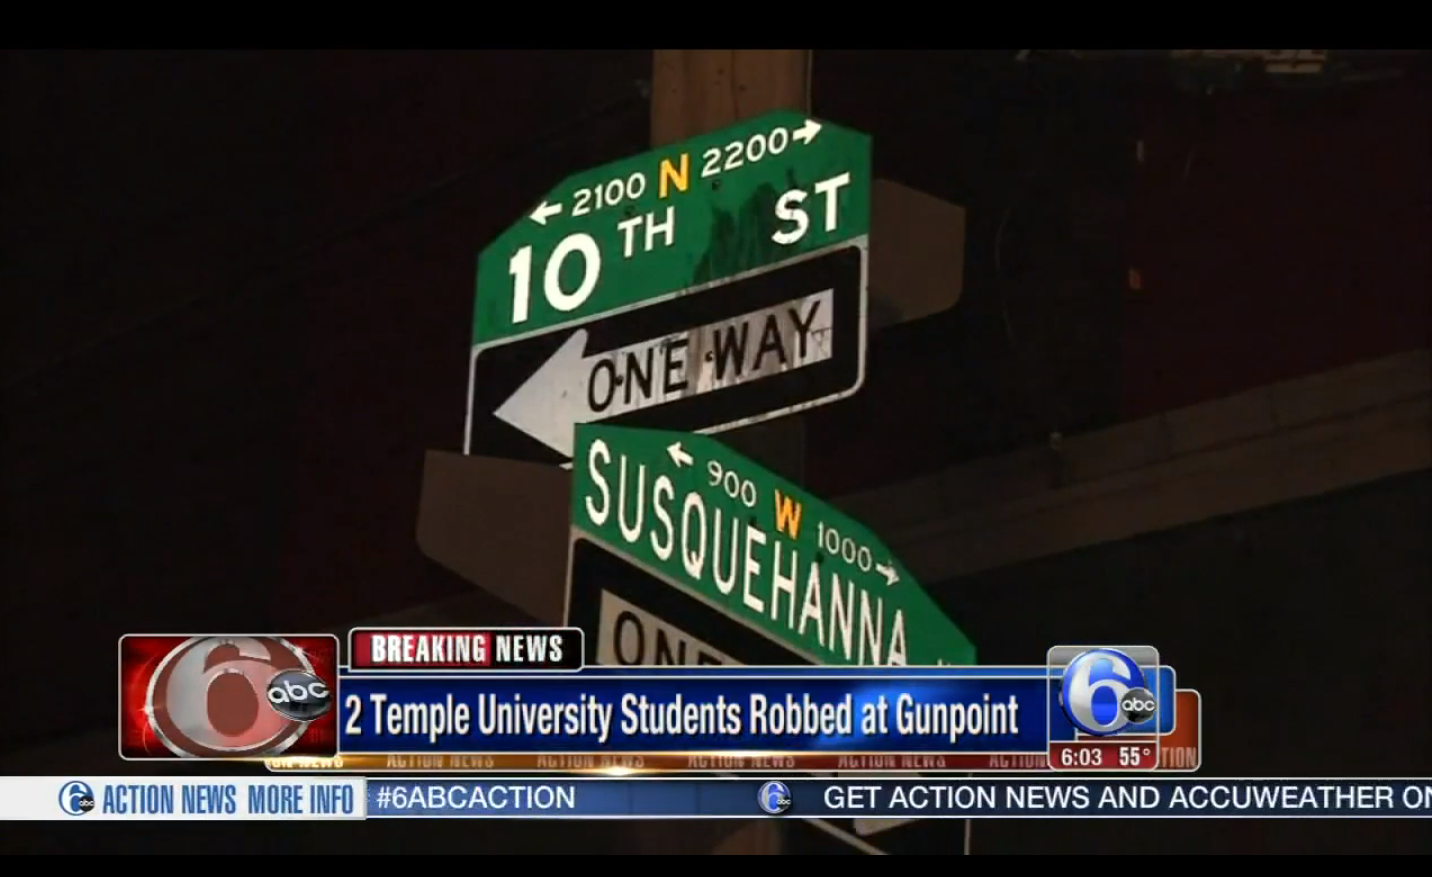 Temple Students Robbed at Gunpoint – Again!